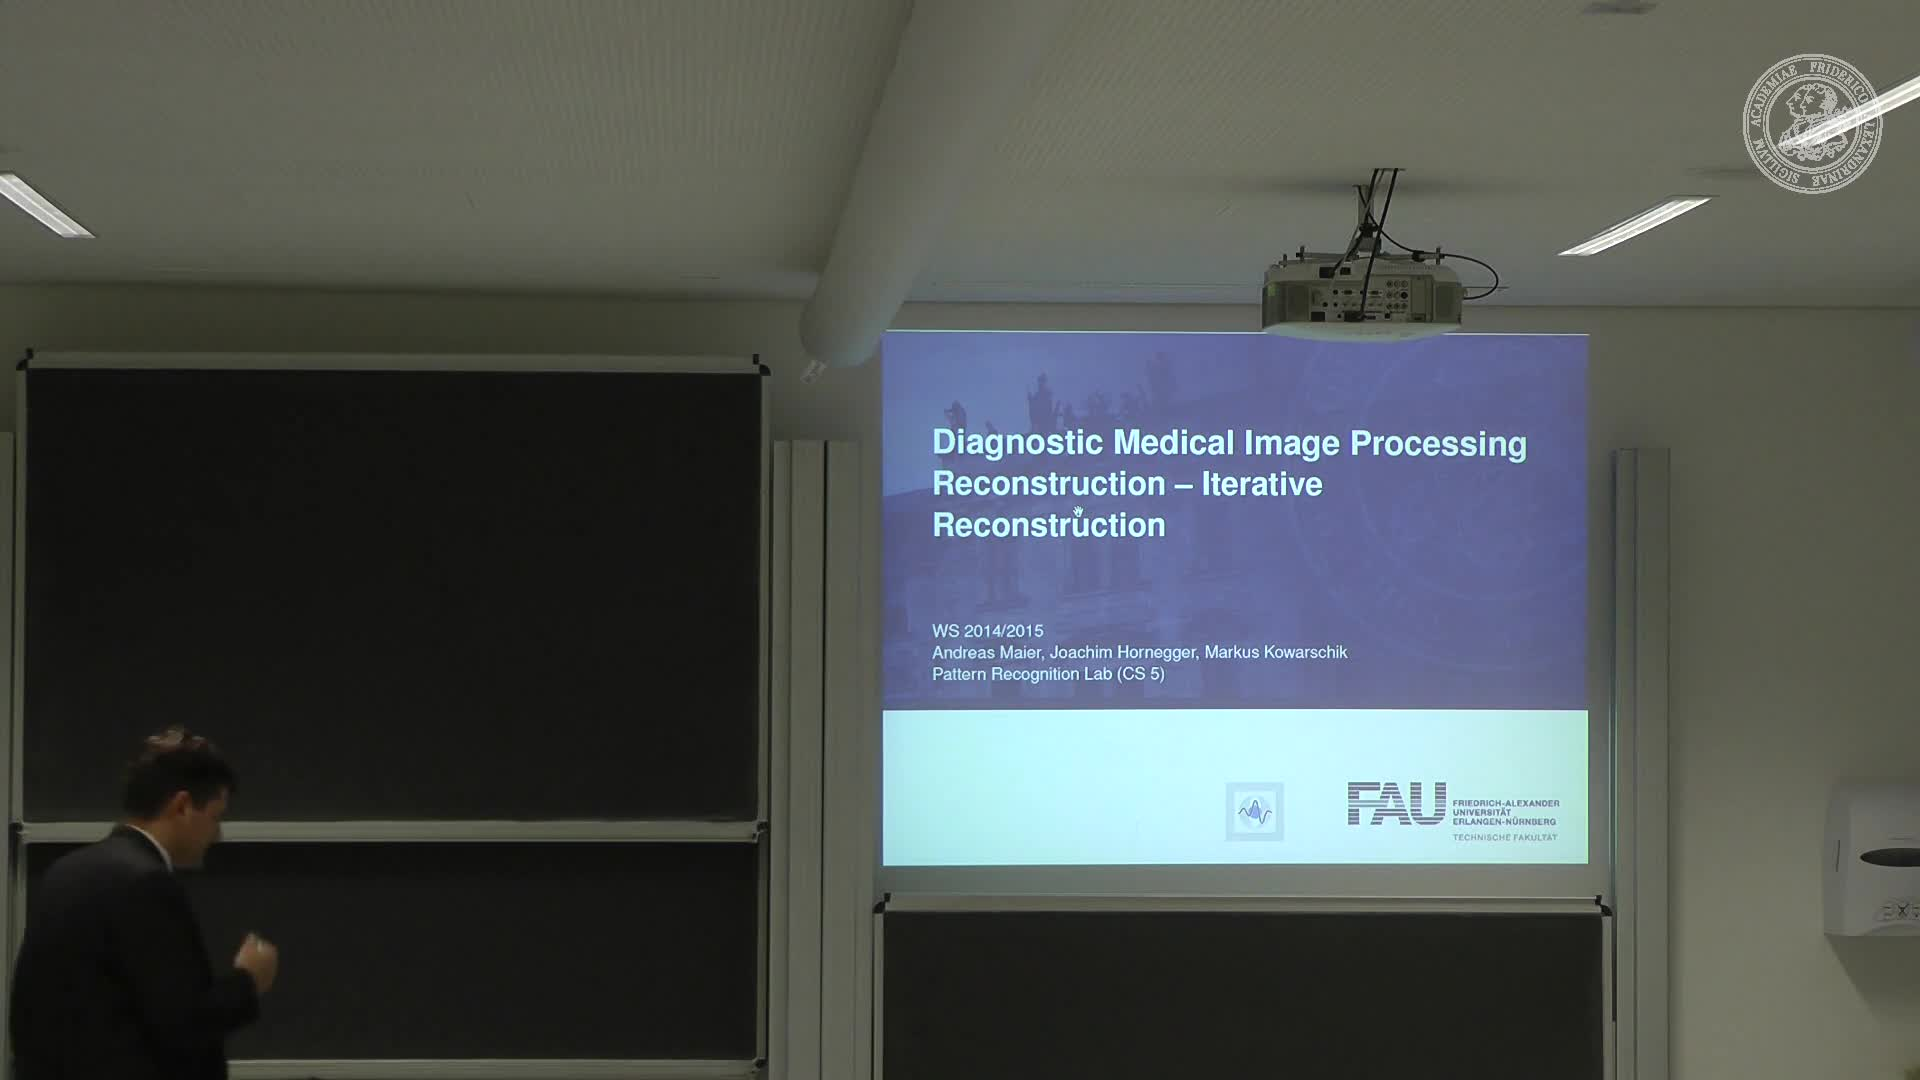 Diagnostic Medical Image Processing preview image